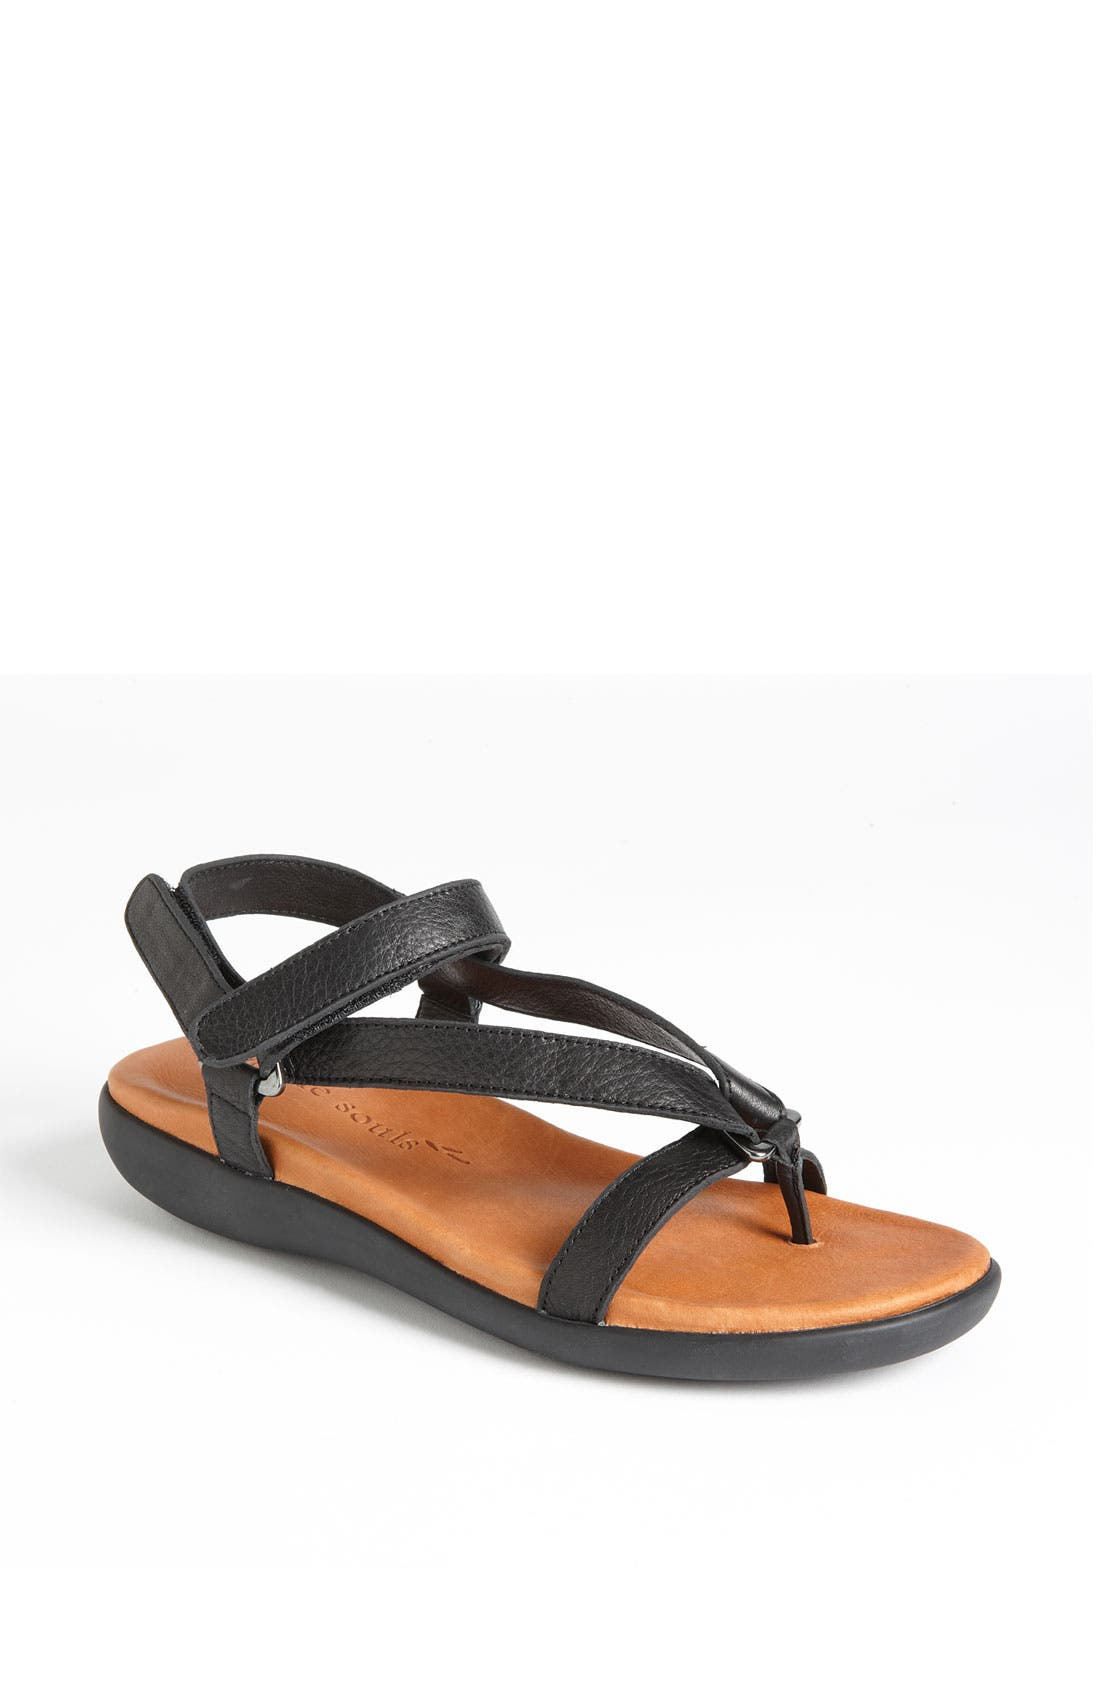 Gentle Souls 'Go Mingle' Sandal,                             Main thumbnail 1, color,                             001